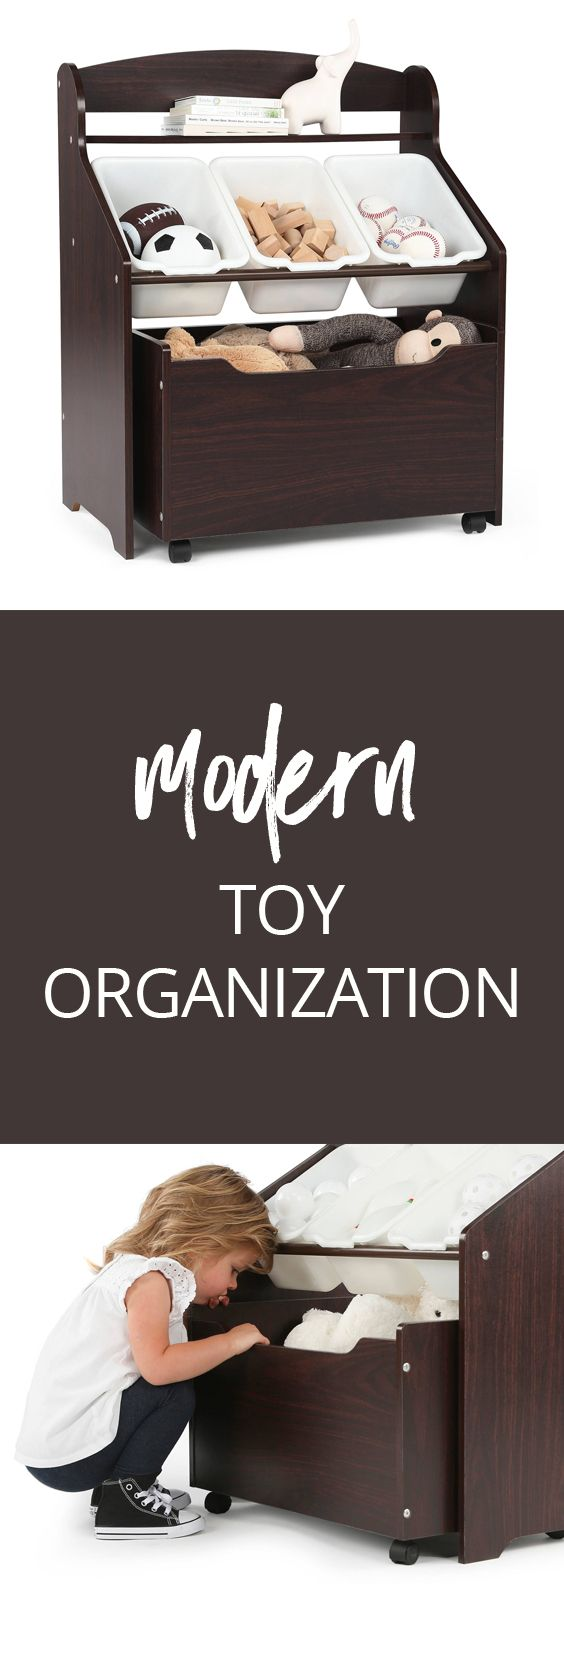 3-Tier Storage Organizer with Rolling Toy Box - perfect for organizing toys and books in style, no garish colors like most toy organizers #modern #toyorganization #organization #toys #declutter #ad #minimalist